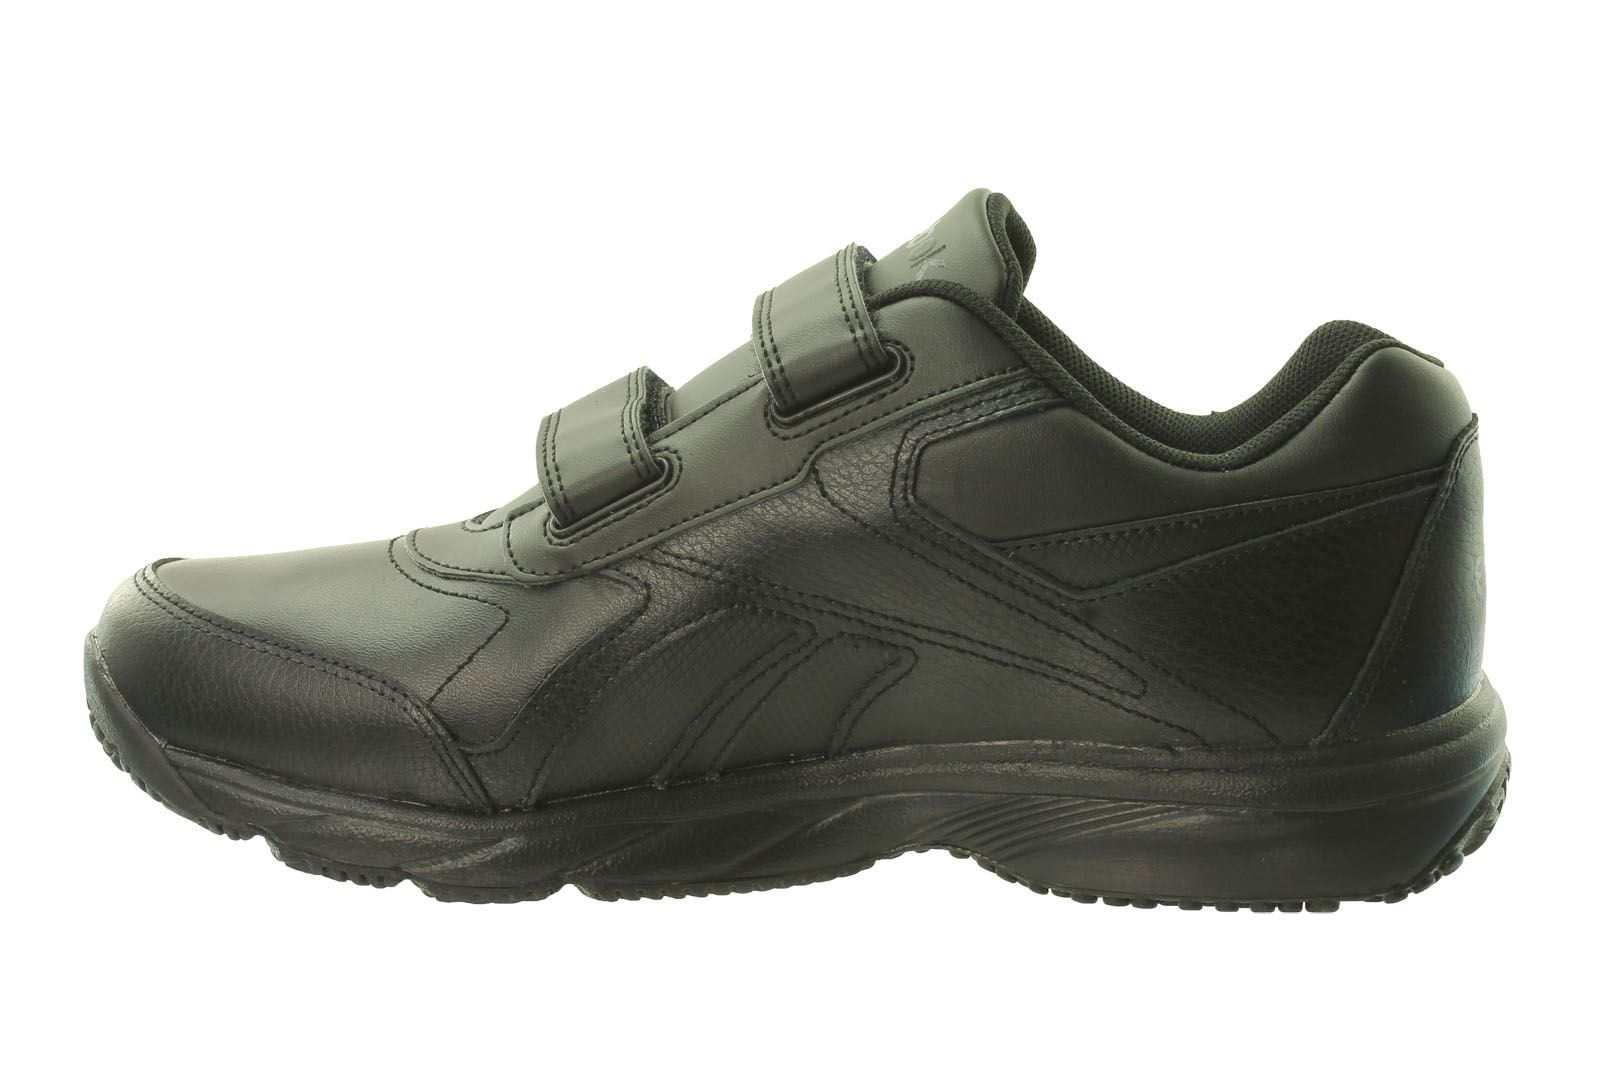 Reebok-Work-039-n-039-Cushion-KC-Mens-Trainers-Leather-CLEARANCE-PRICE Indexbild 13